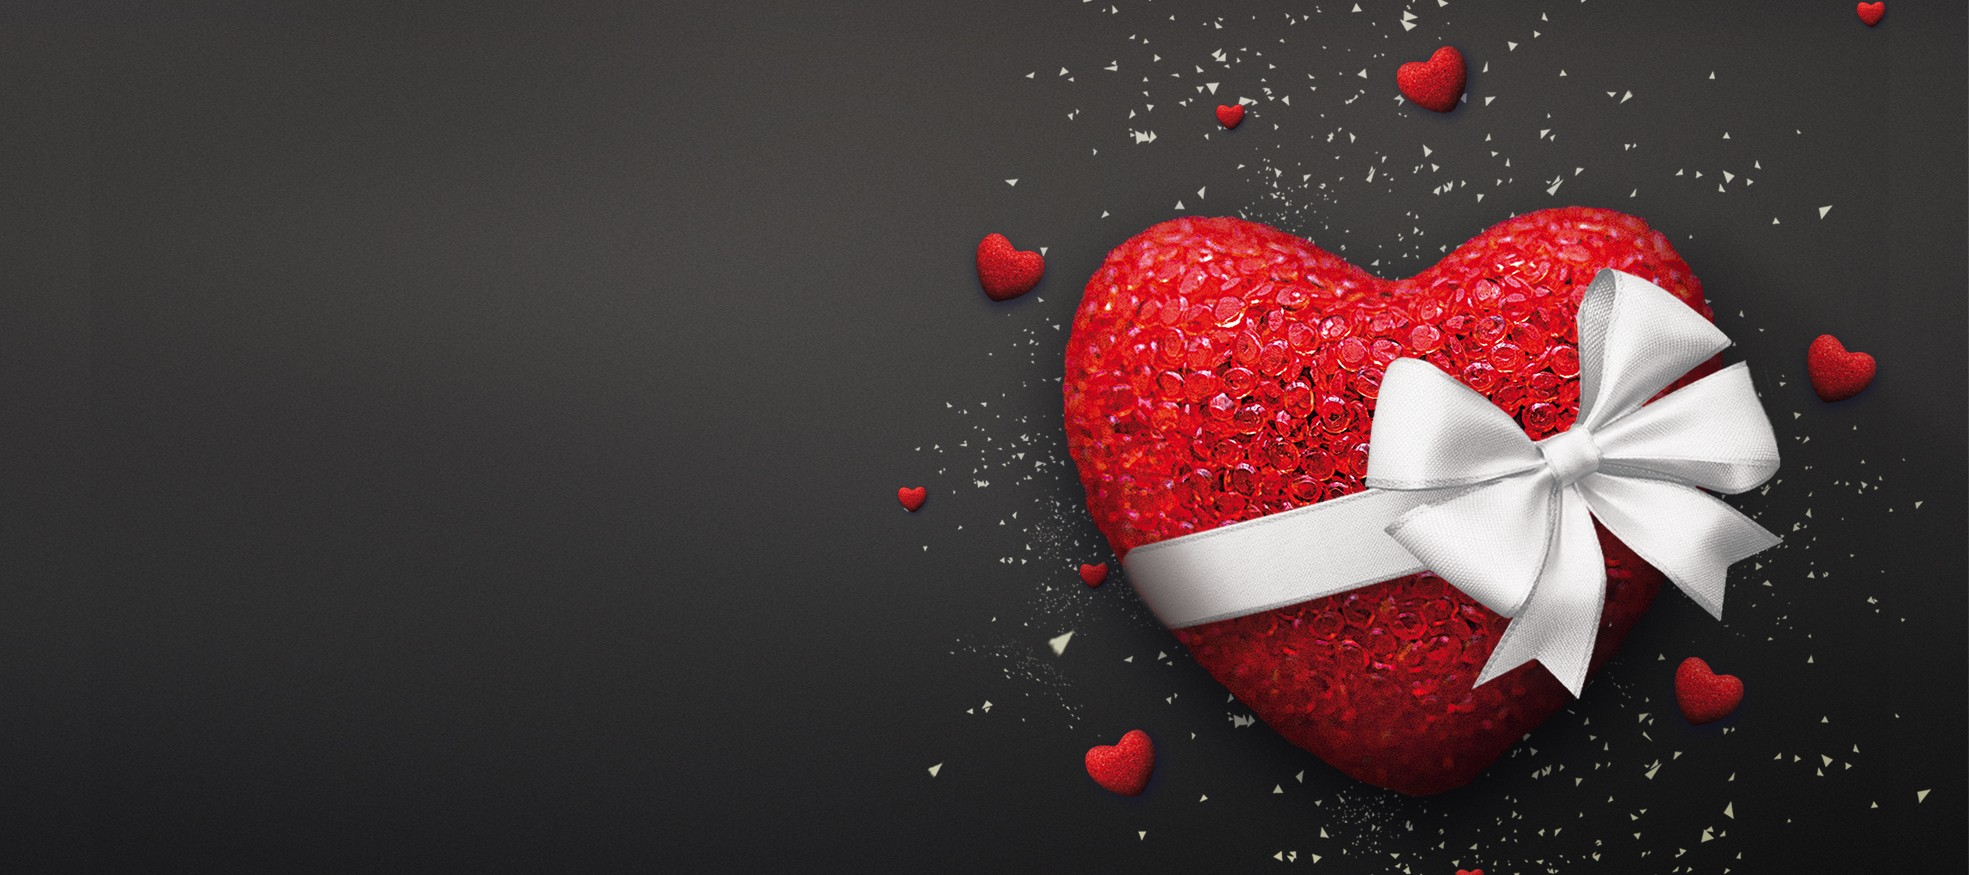 love wallpaper hd 4k background vector valentine lovebi...